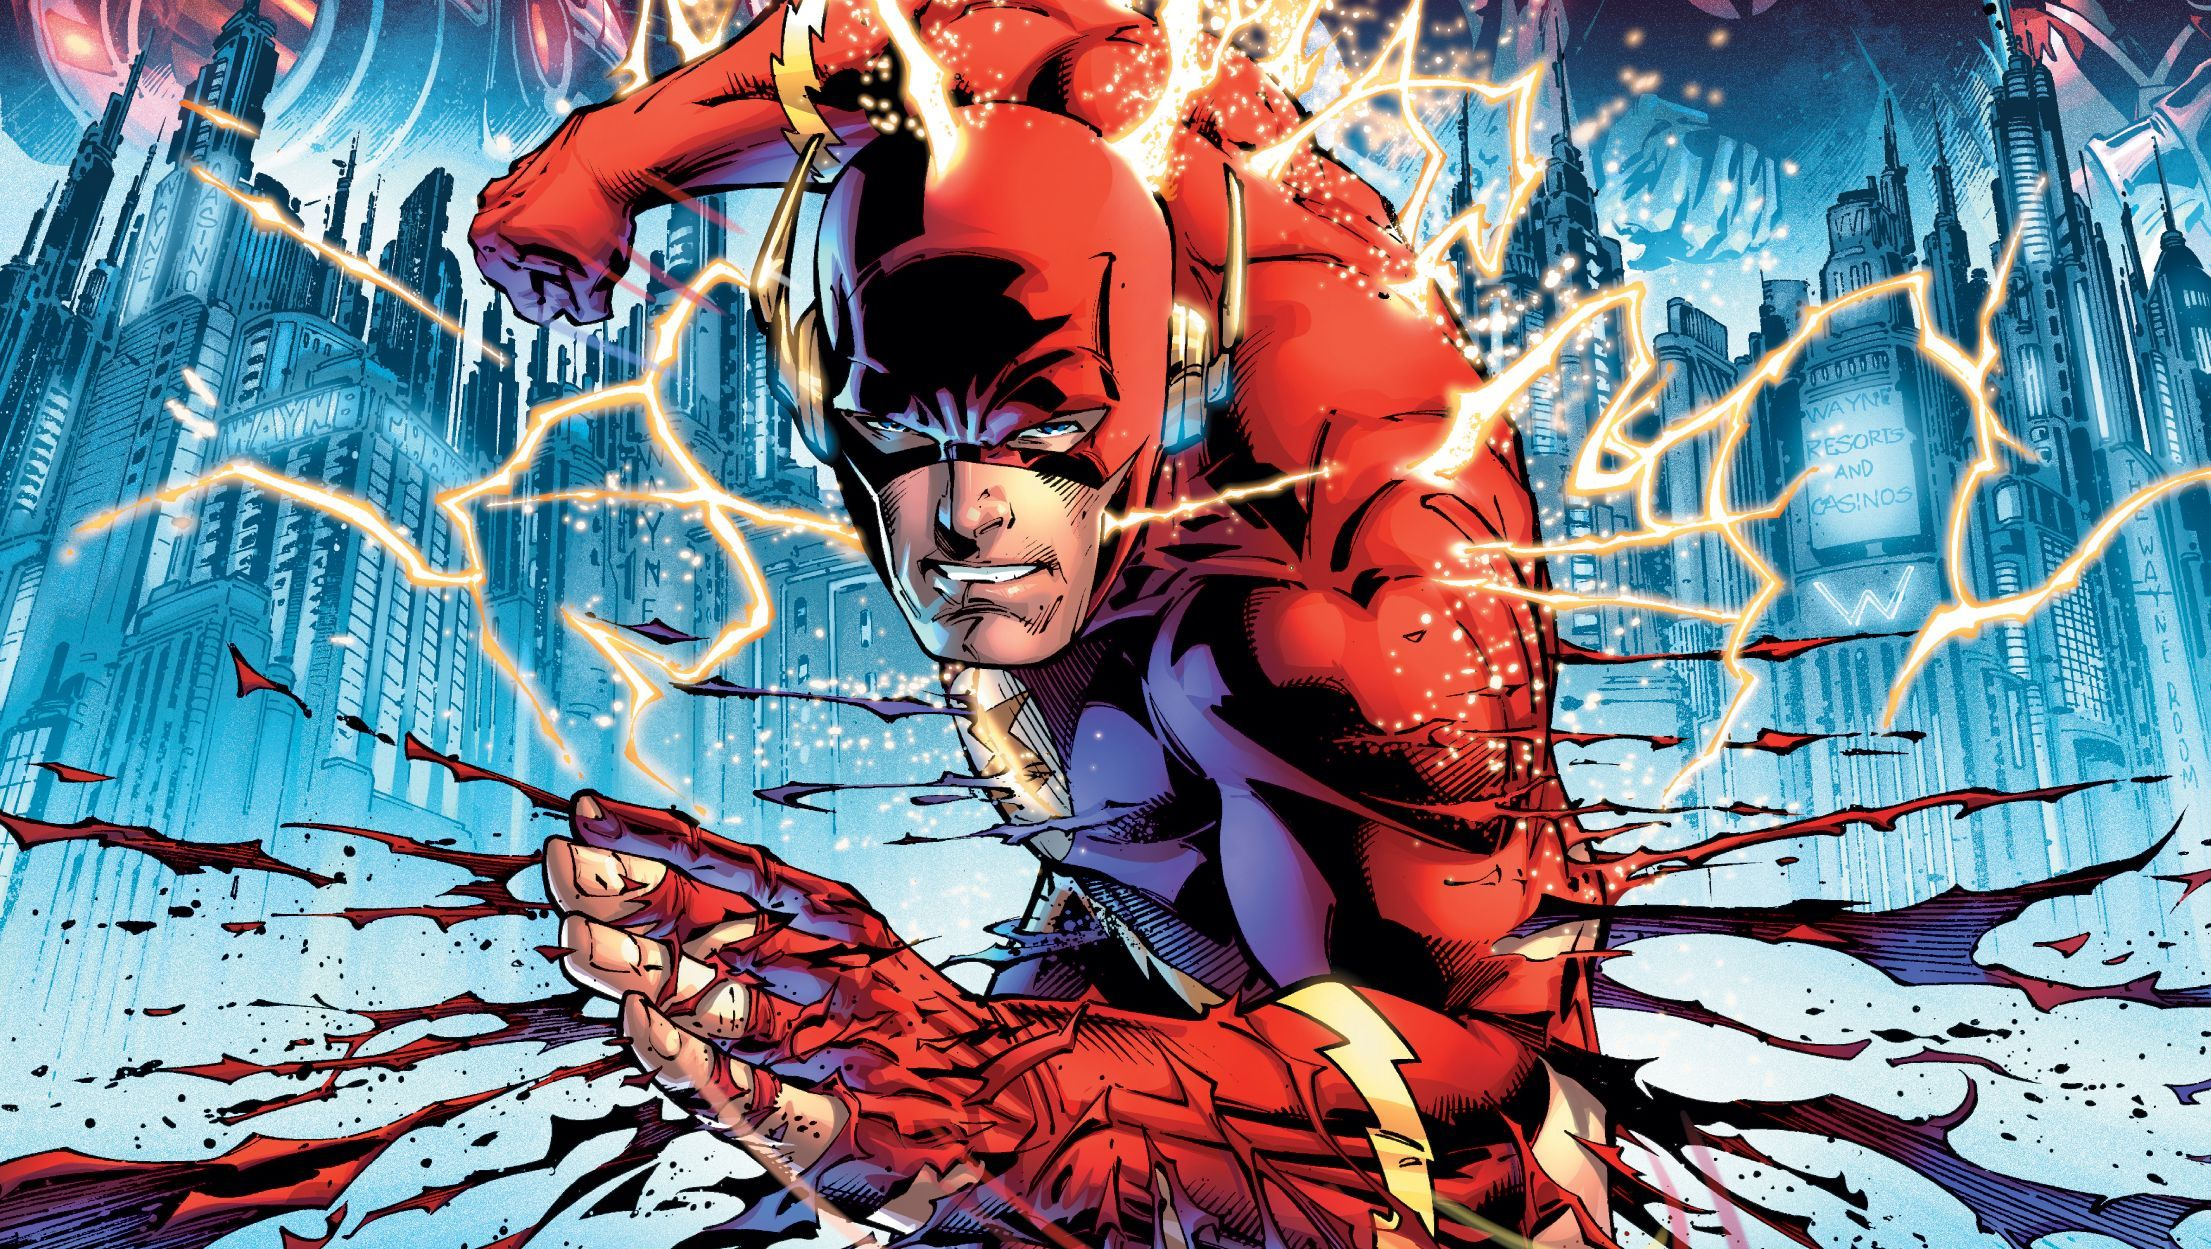 Comics Flash Flashpoint Hd Wallpaper Background Image With Images